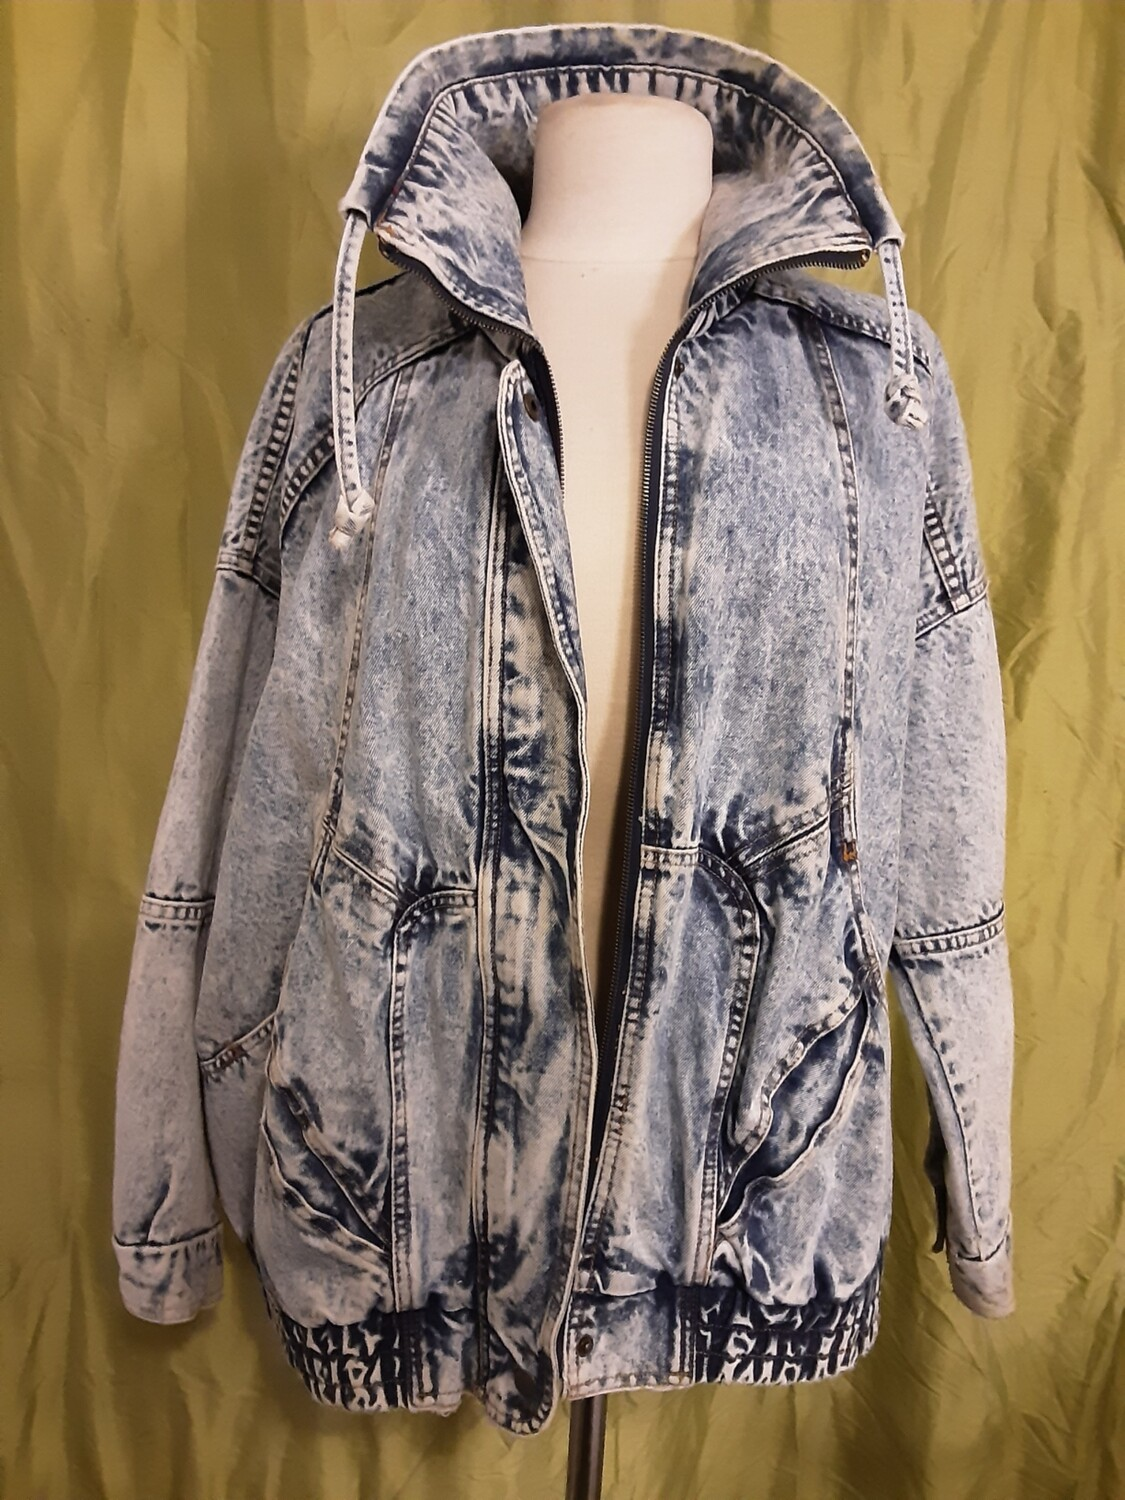 Acid Washed Vintage Jacket - XL